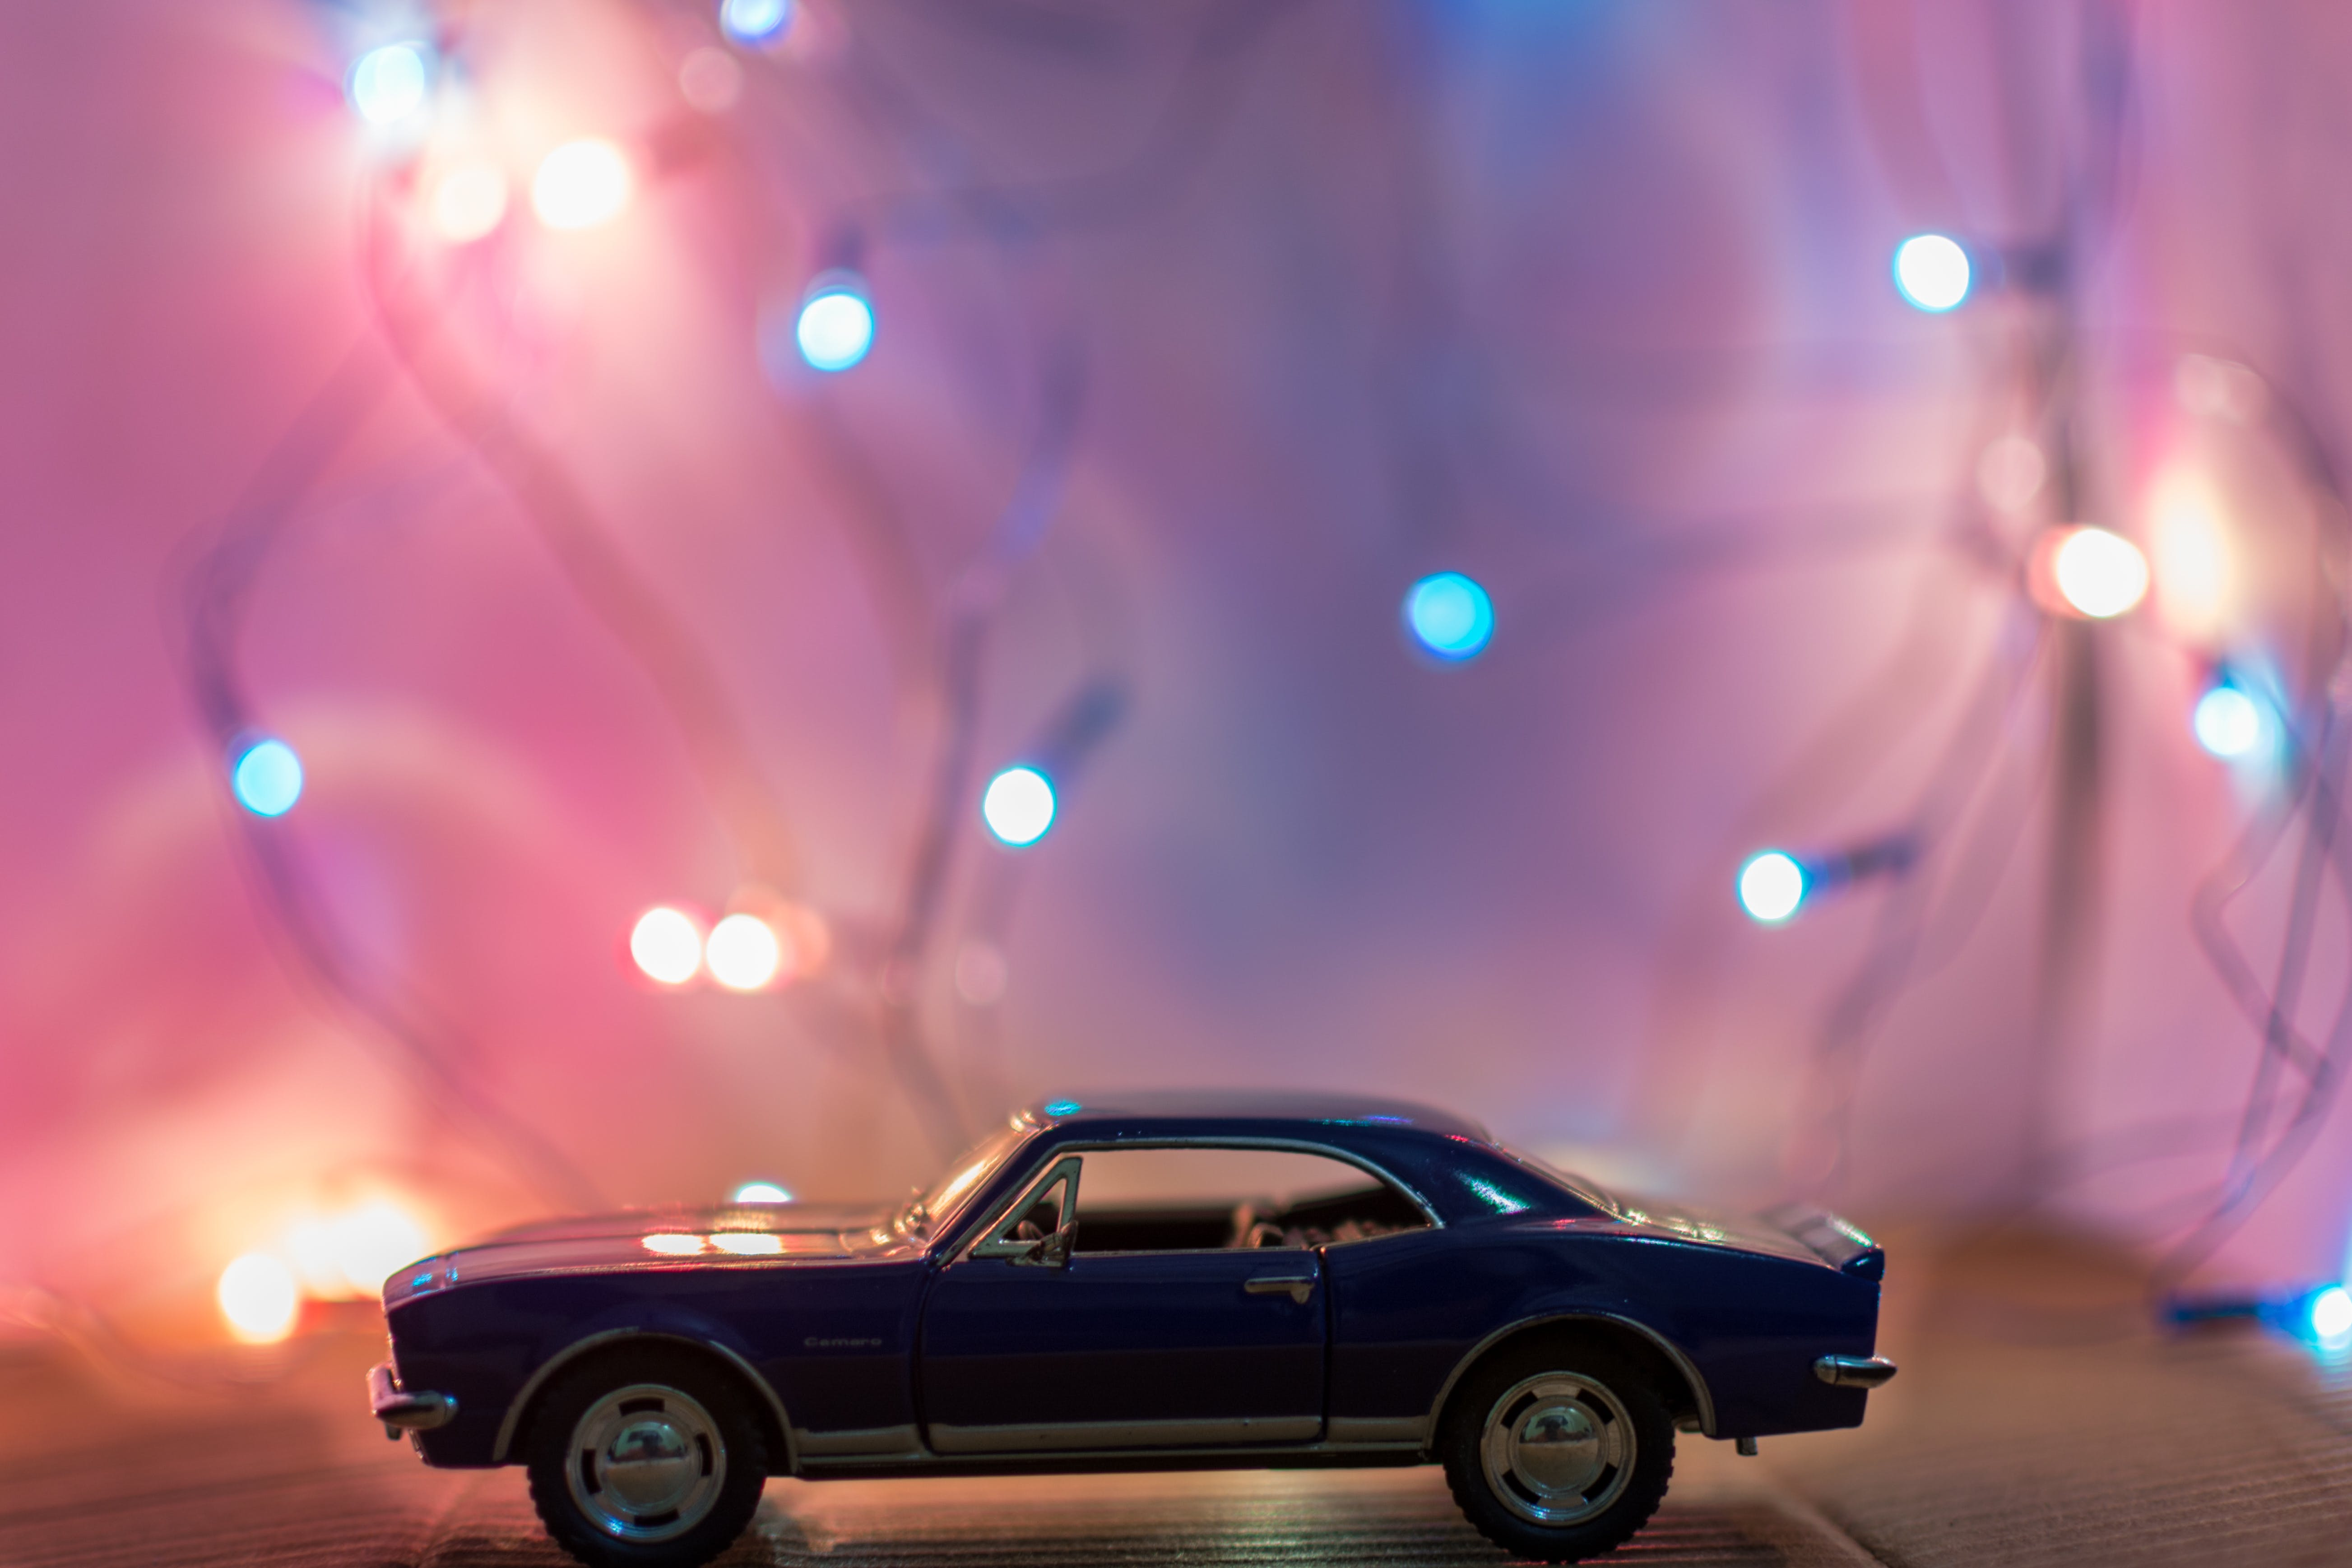 Selective Focus Photography of Classic Blue Coupe Die-cast Model in Front of String Lights on Table